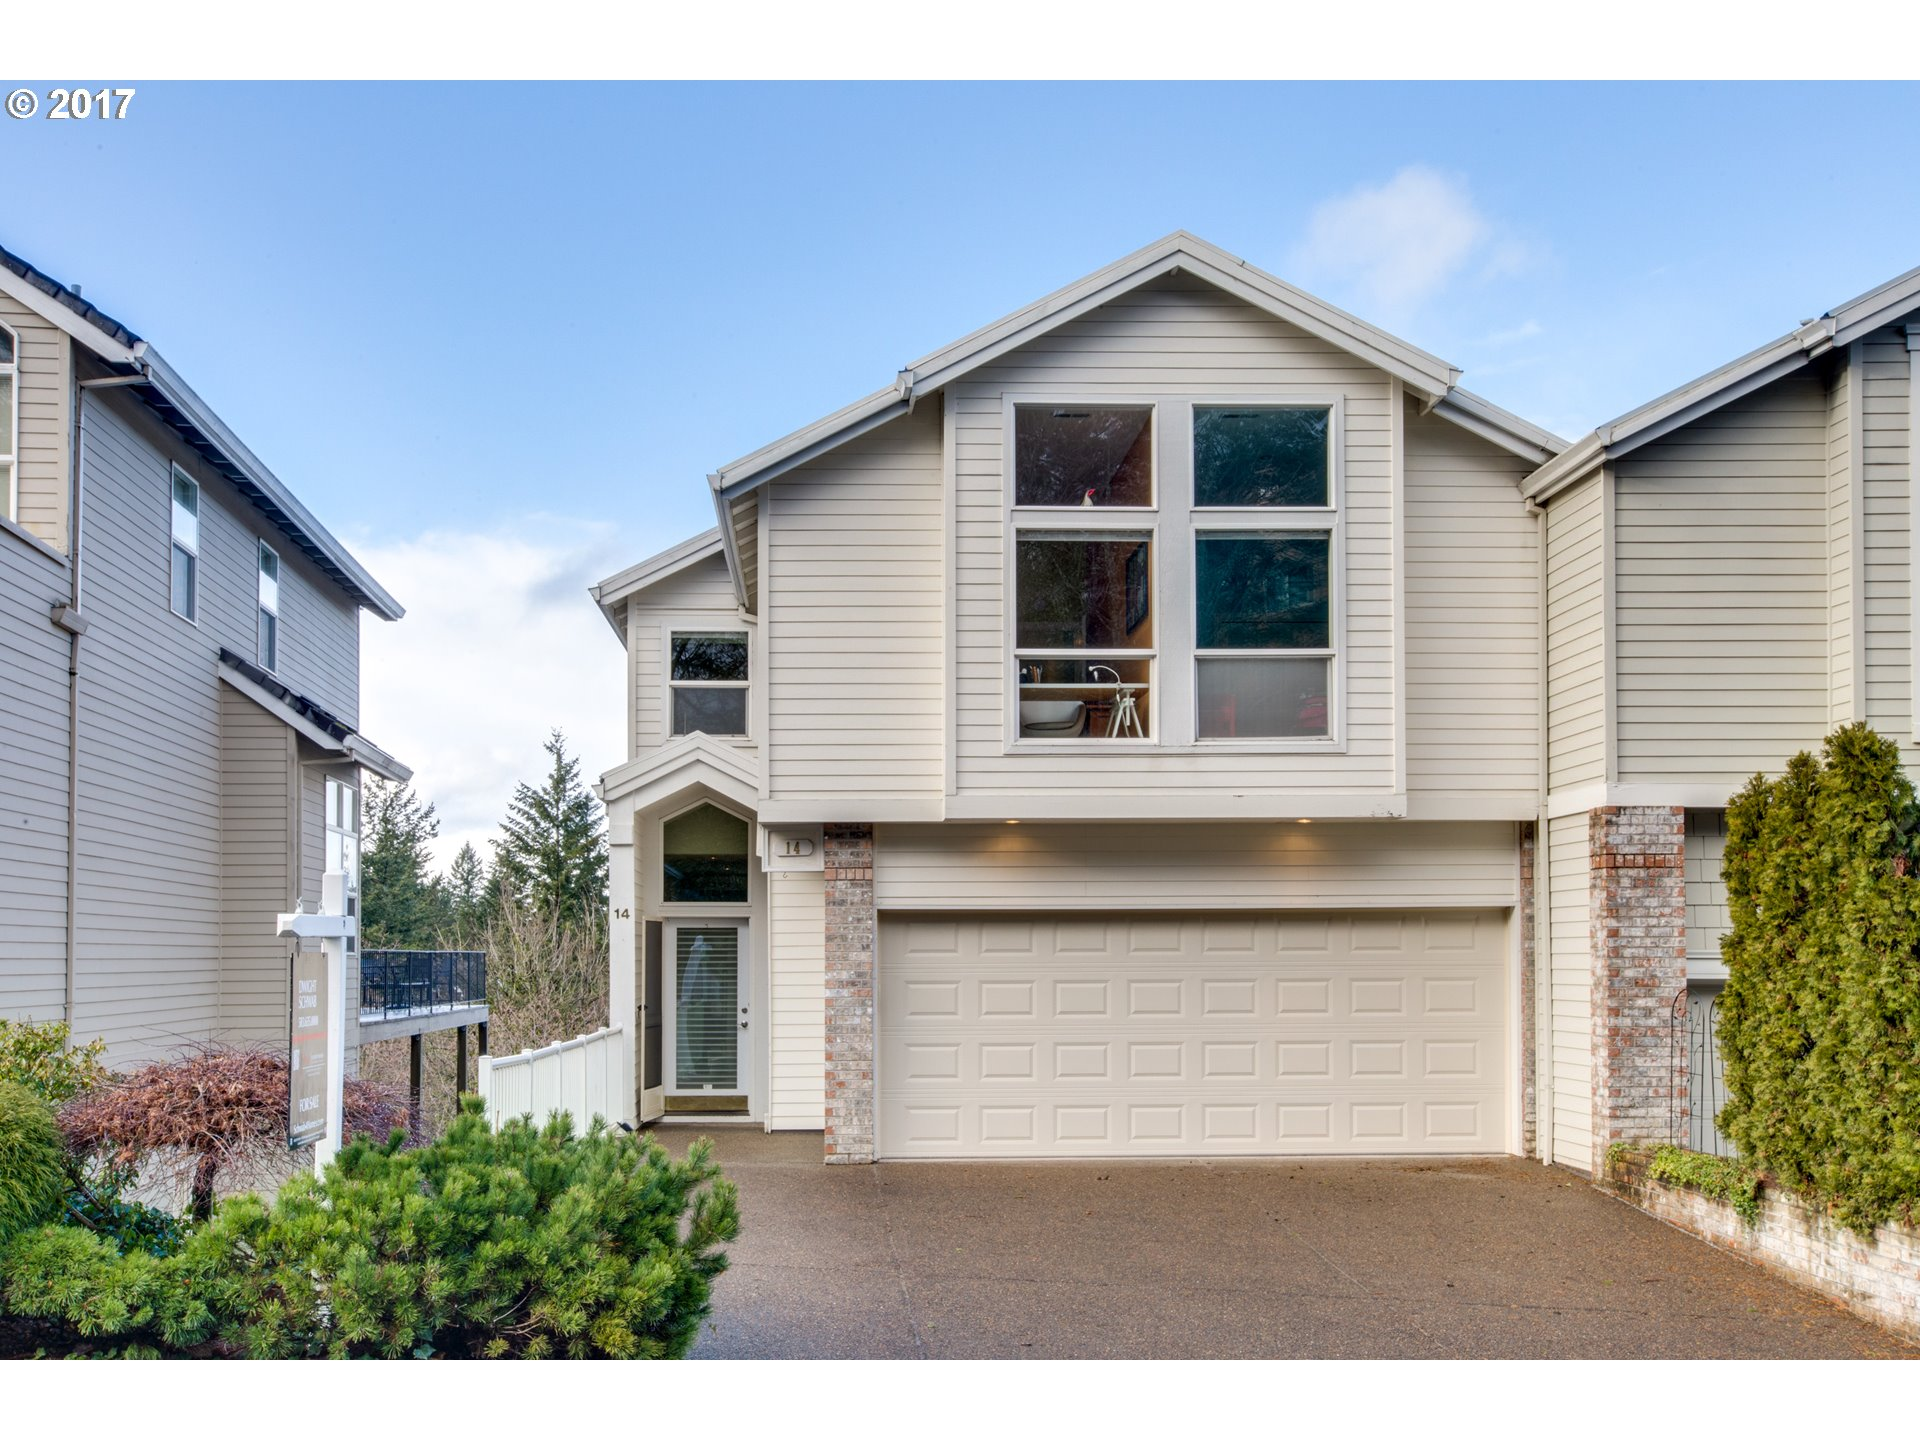 14 NORTHVIEW CT, Lake Oswego, OR 97035